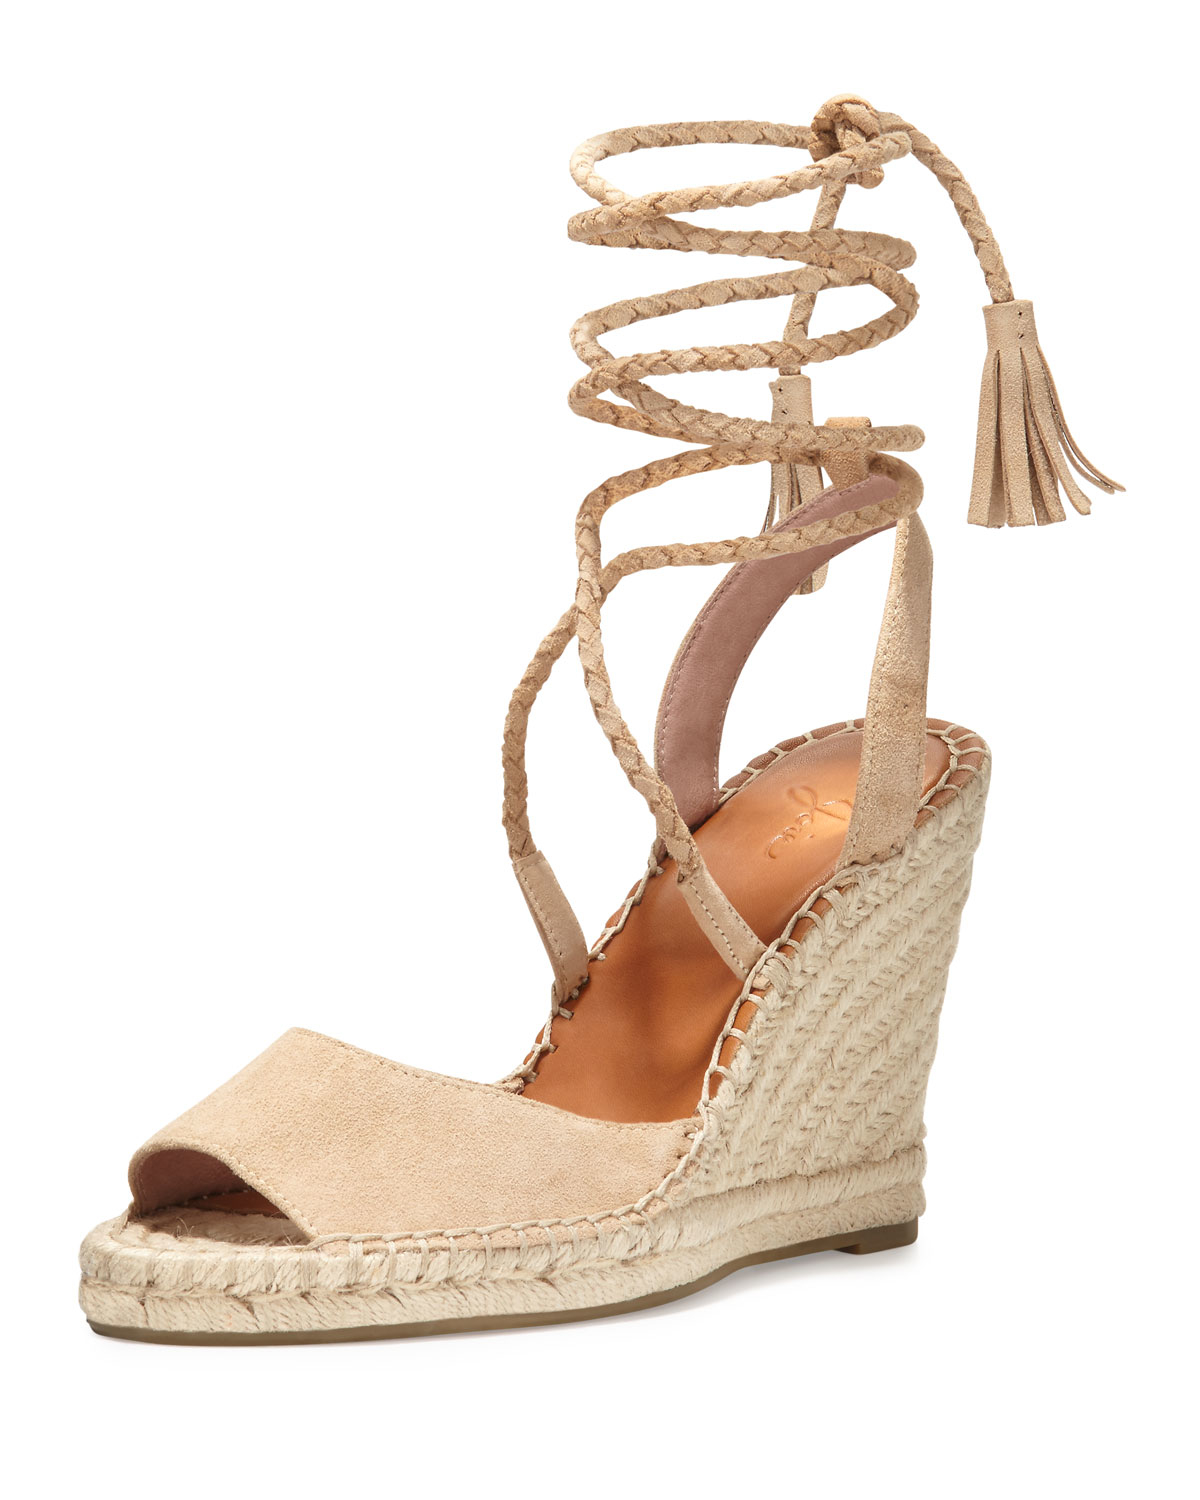 3cc3934e7c8 Lyst - Joie Phyllis Suede Wedge Espadrilles in Natural